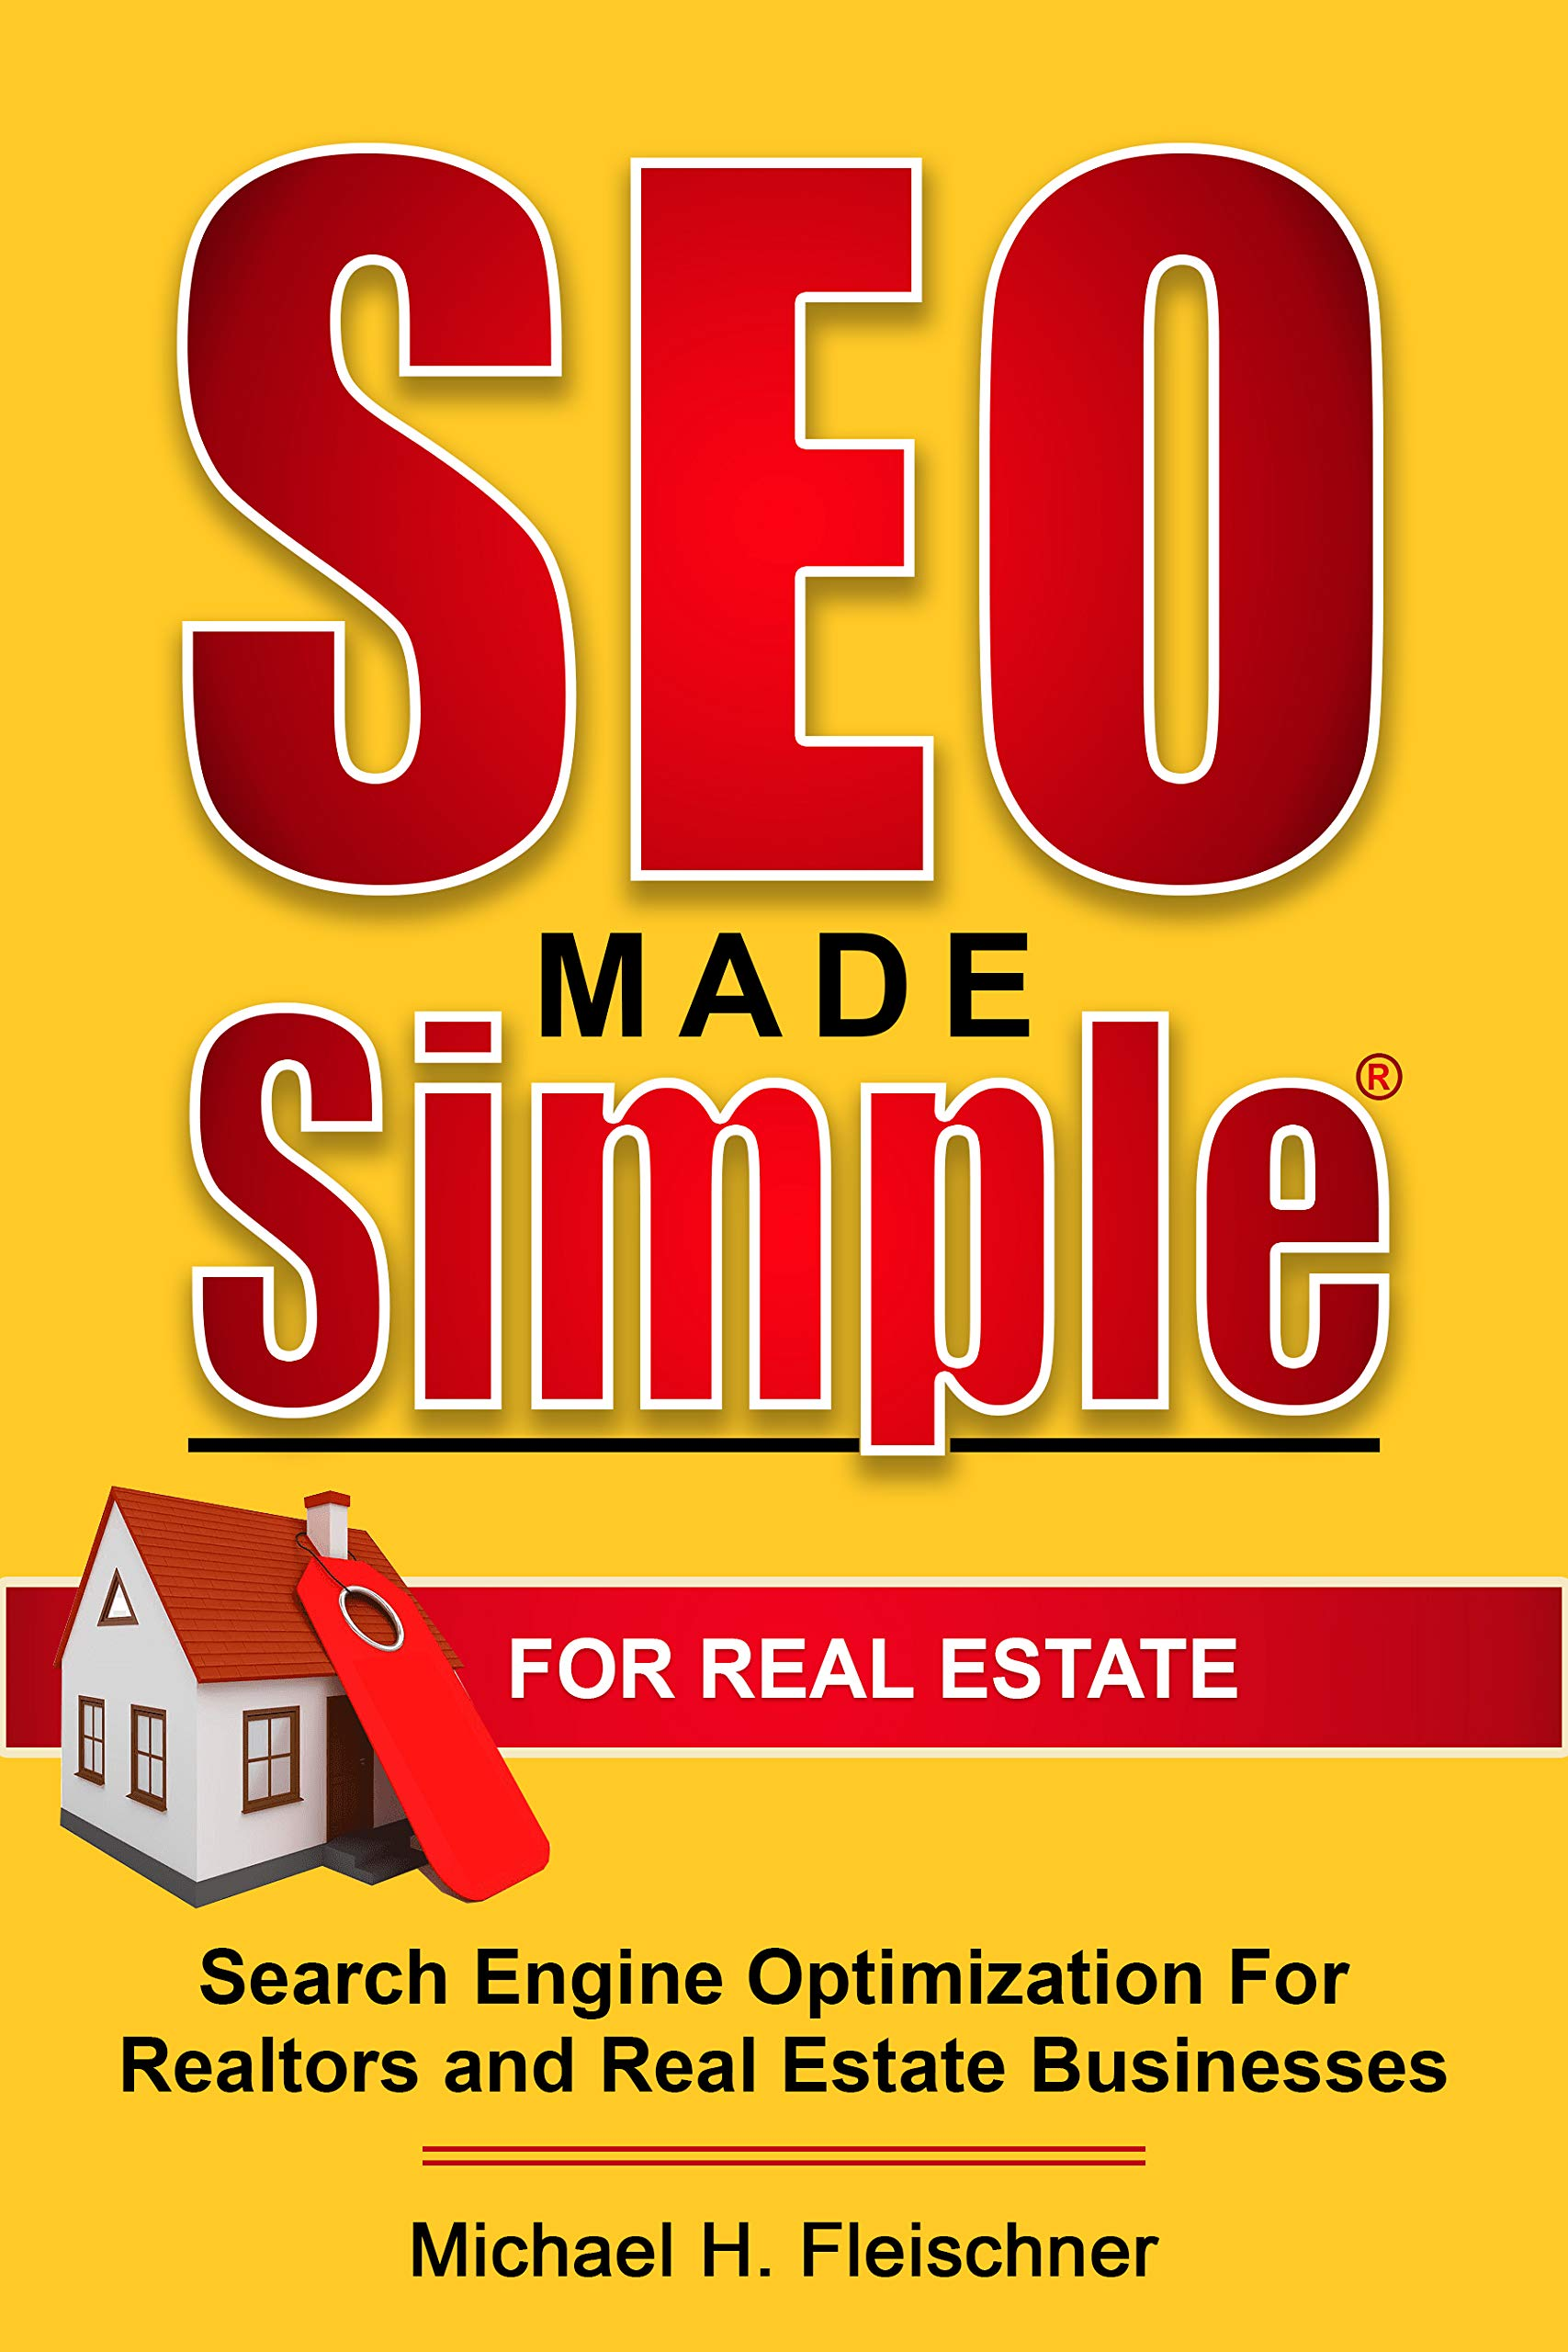 SEO Made Simple For Real Estate: Search Engine Optimization For Realtors and Real Estate Businesses